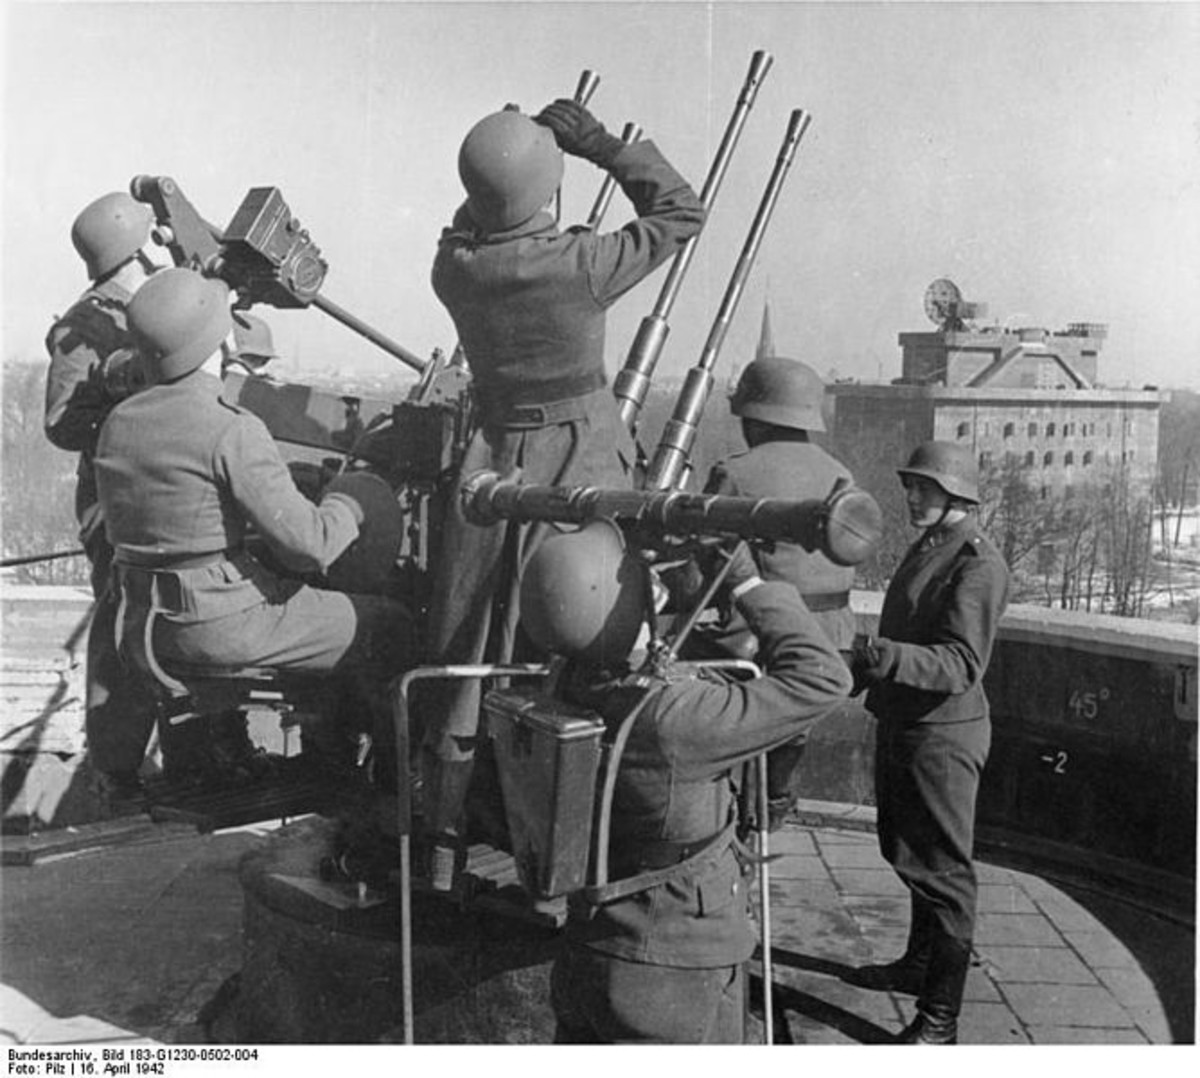 WWII: Berlin: 20 mm anti-aircraft crew on a G-Tower (Combat Tower). In the distance is its sister L-Tower (Command Tower).